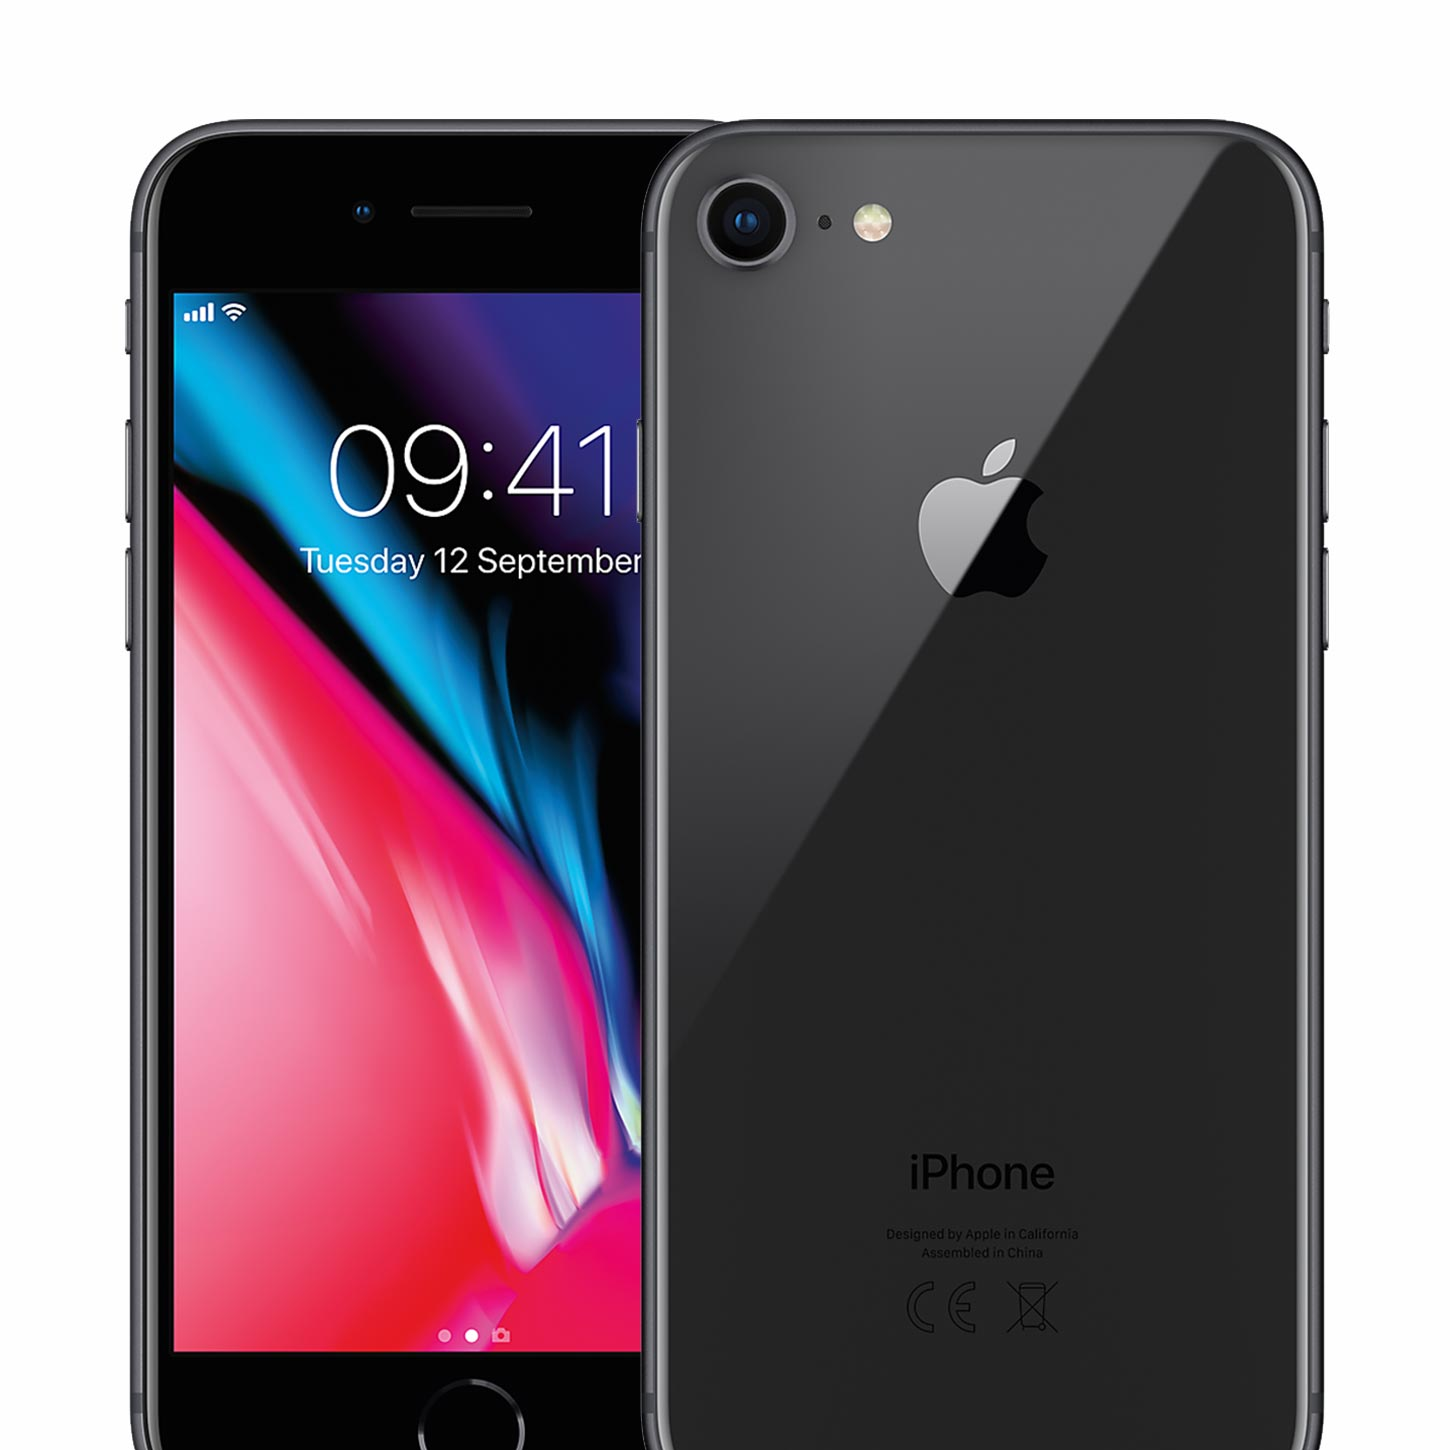 Apple Iphone 8 64gb Space Grey Sim Free Unlocked Smartphone 6 Refrubish Tempered Glass Refurbished